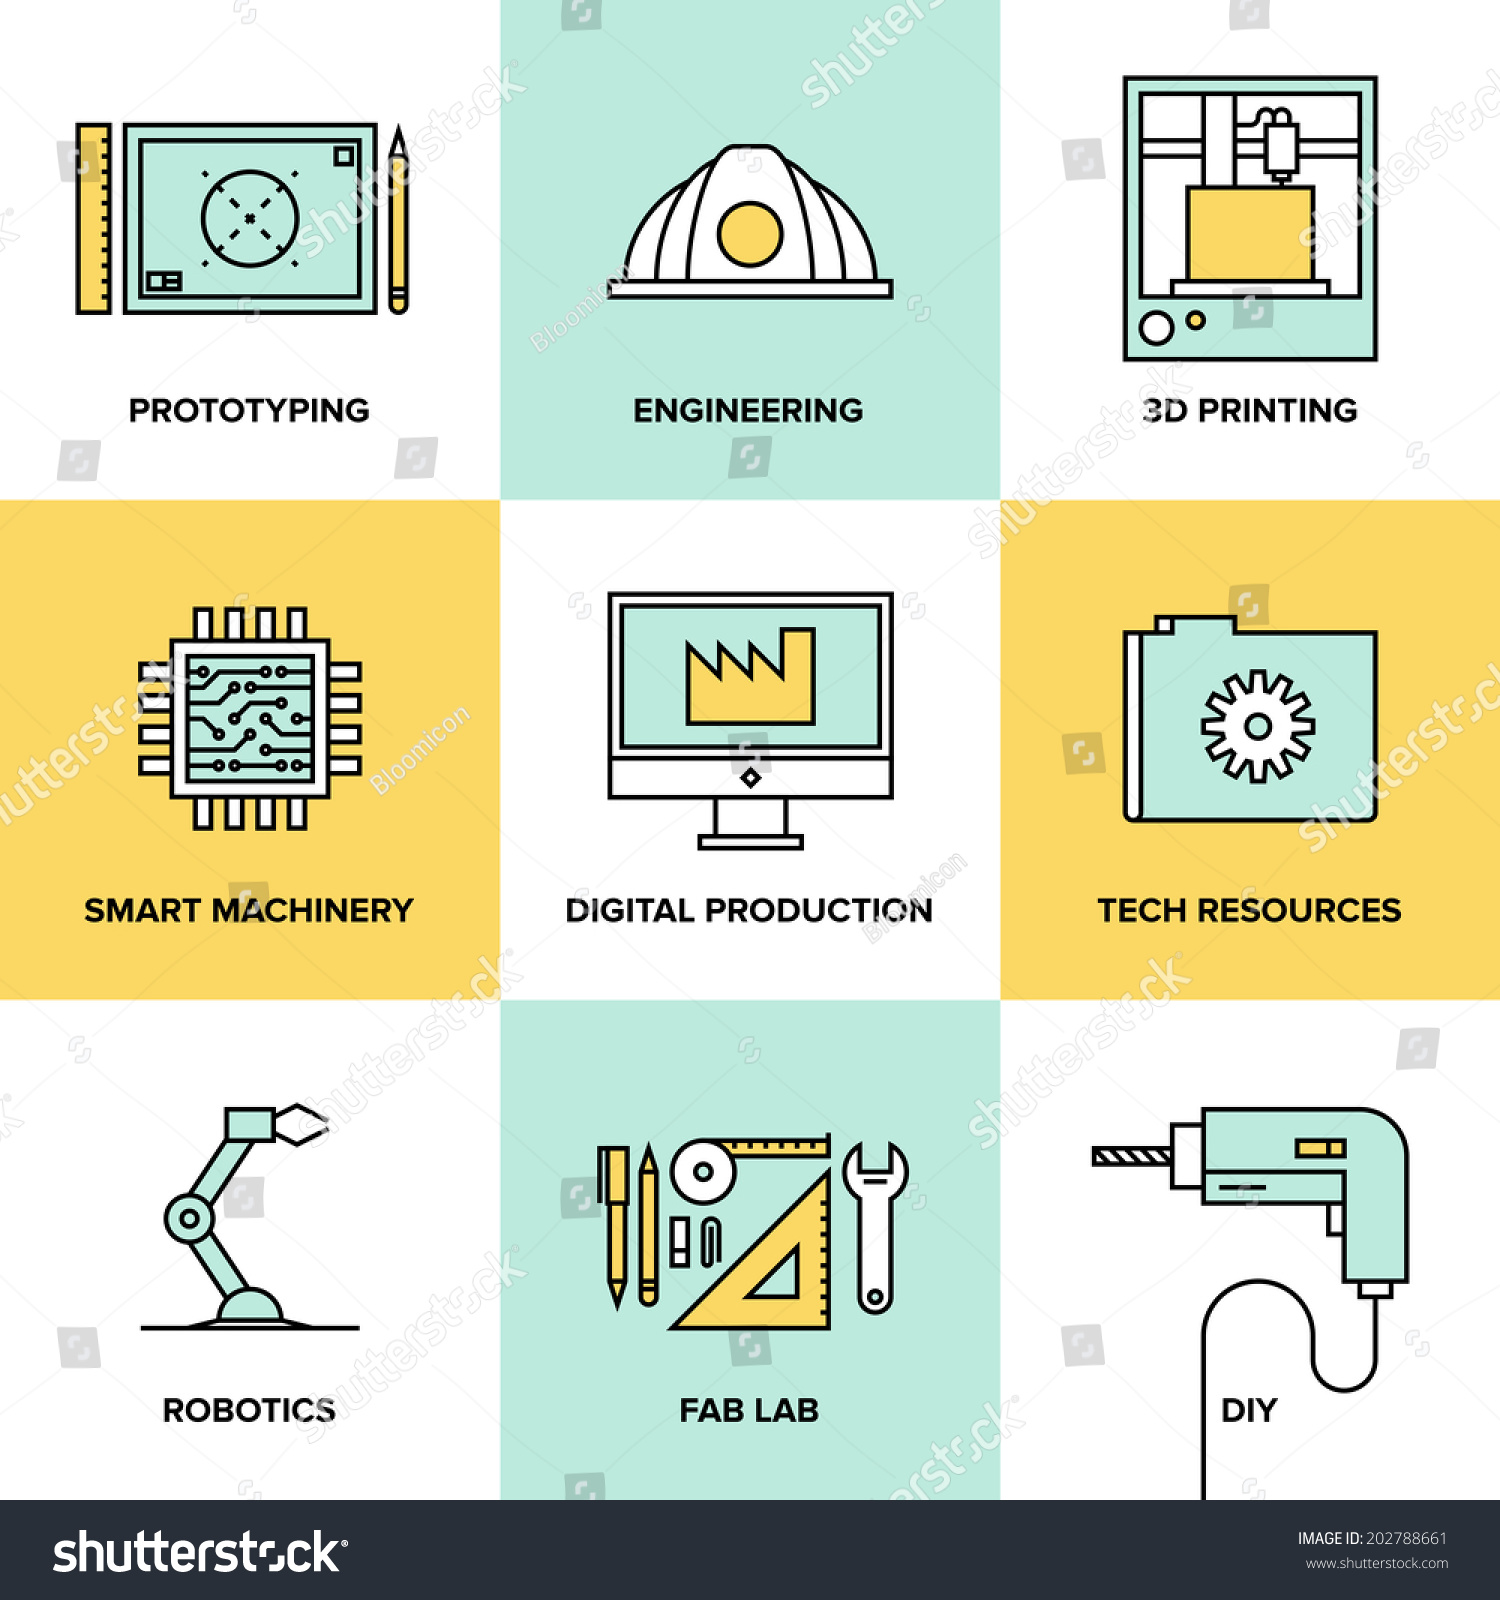 Flat Line Icons Set Industrial Technology Stock Vector ...  Flat Line Icons...